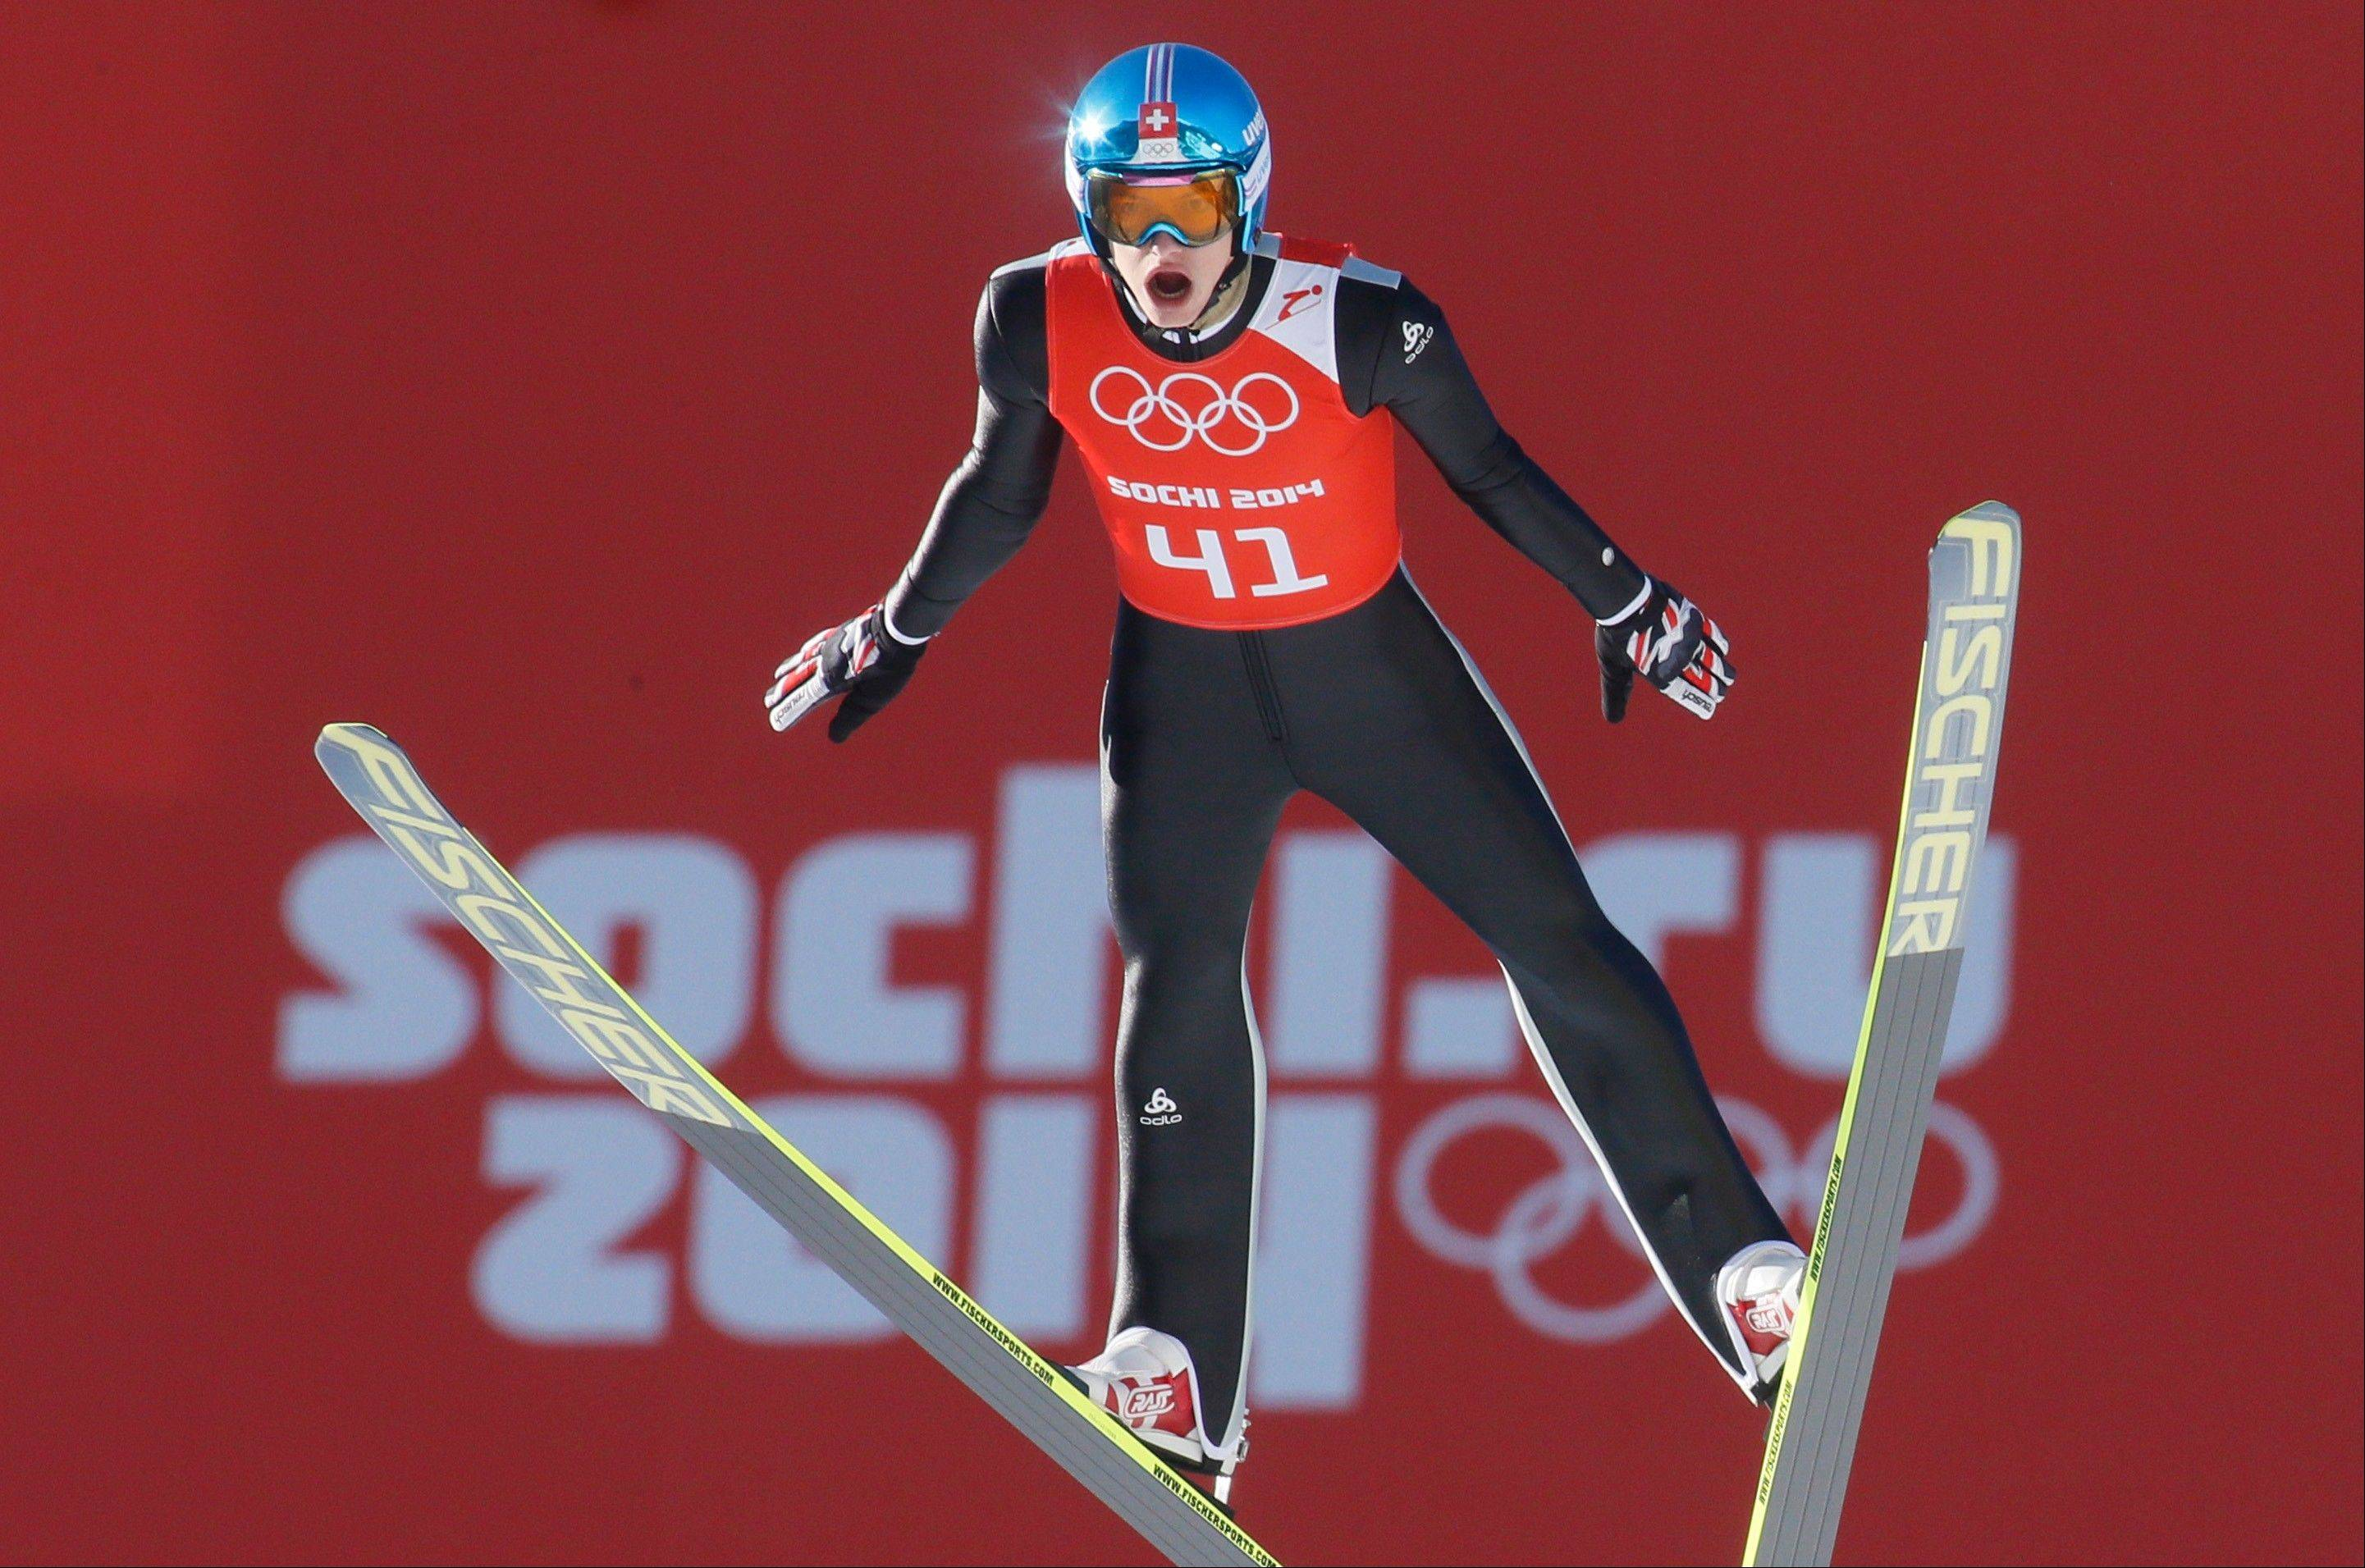 Switzerland's Gregor Deschwanden makes an attempt Friday during the men's normal hill ski jumping training at the 2014 Winter Olympics in Krasnaya Polyana, Russia.